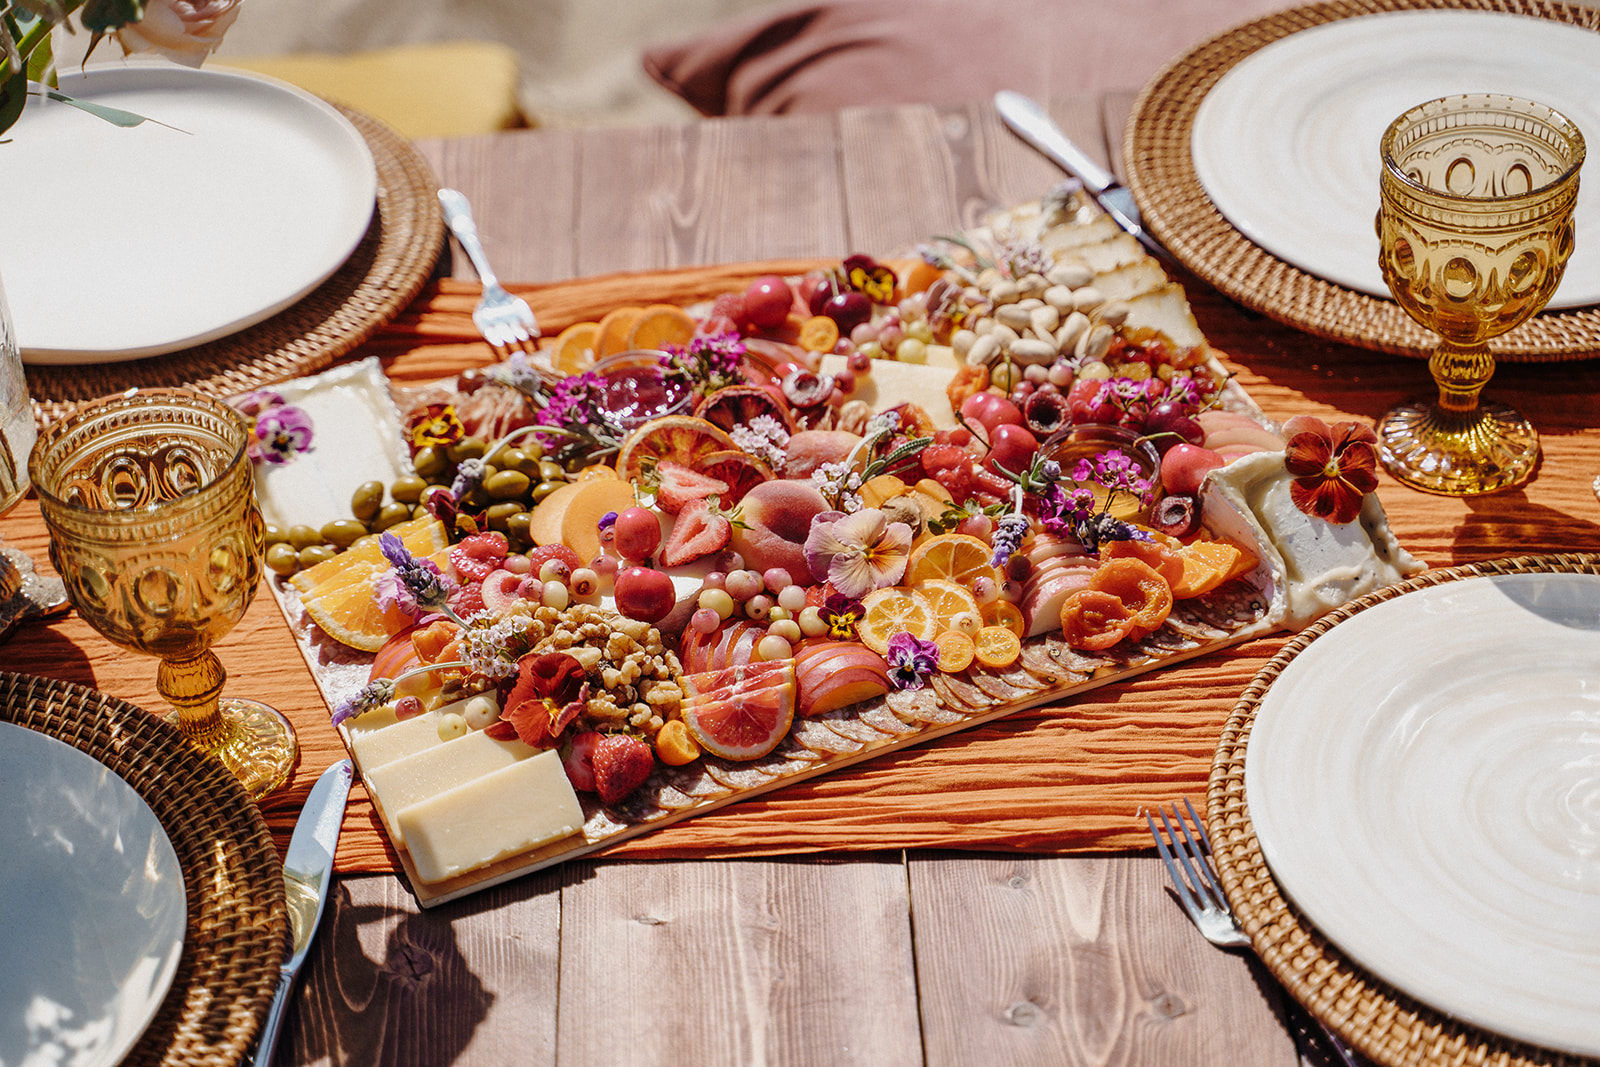 engagement party ideas and food spreads